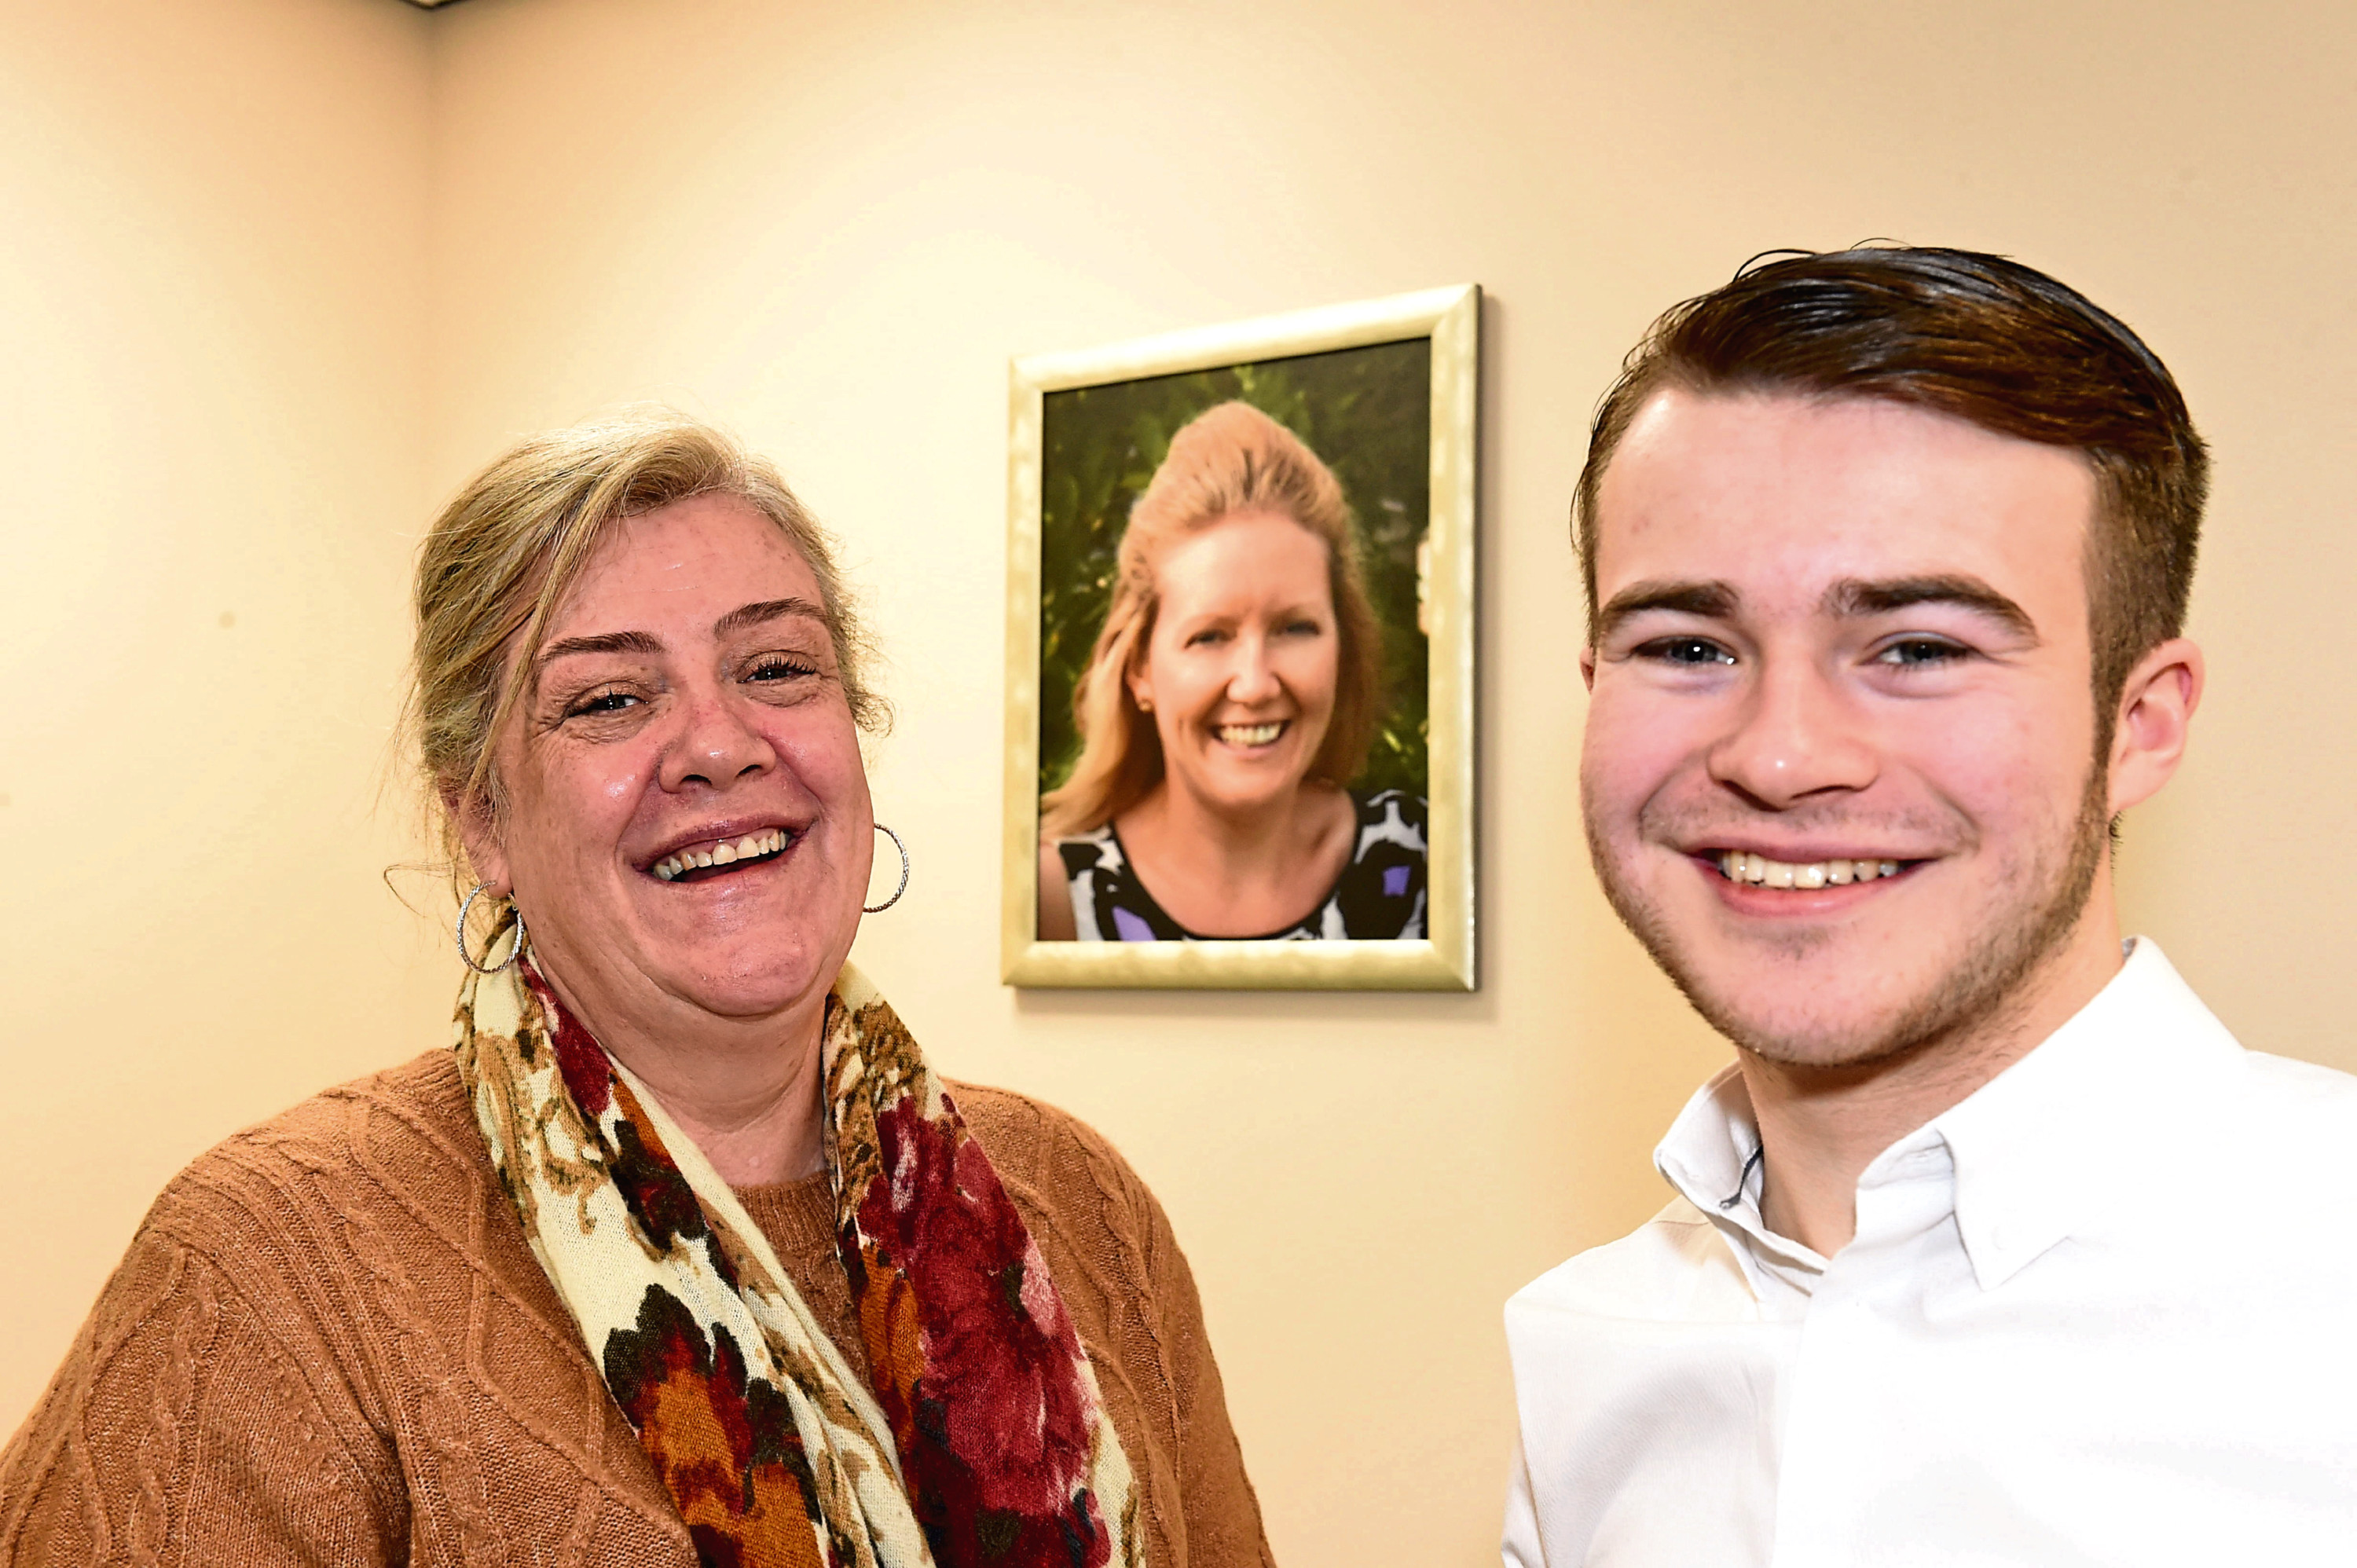 Shirley's Space manager Fiona Weir and service founder Cameron Findlay